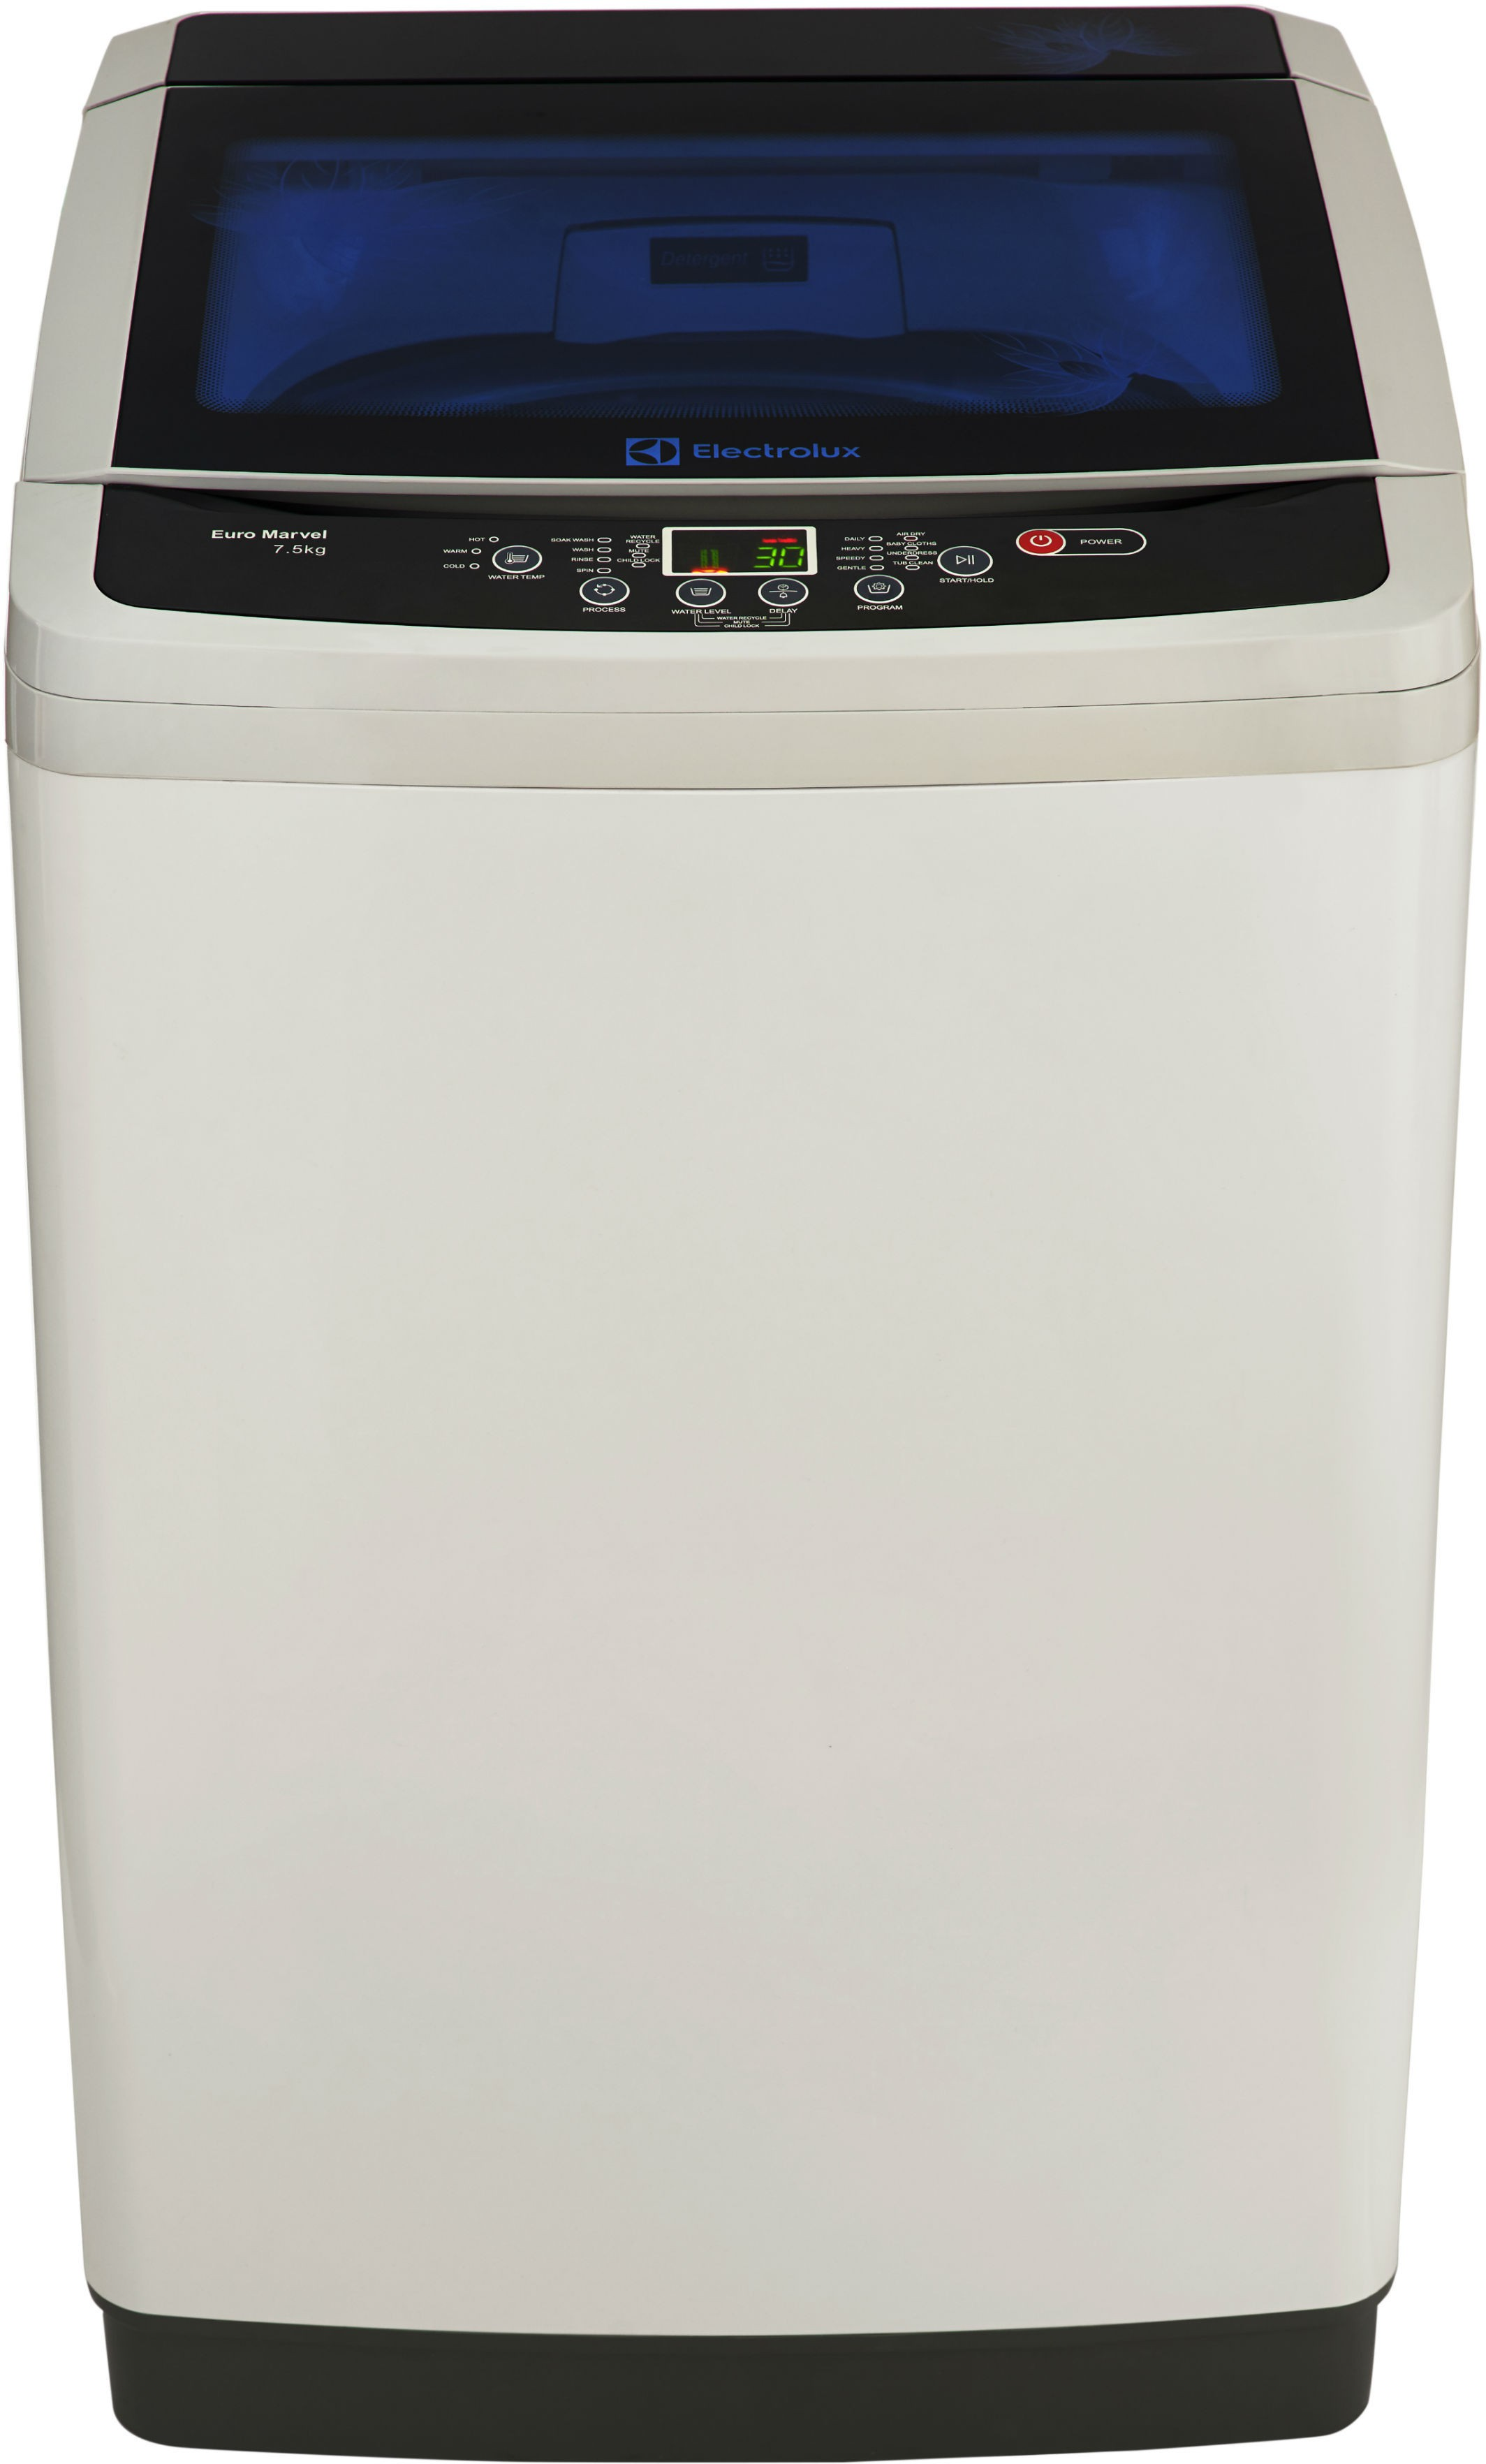 Electrolux Ewf600fz Fully Automatic Washing Machine Image